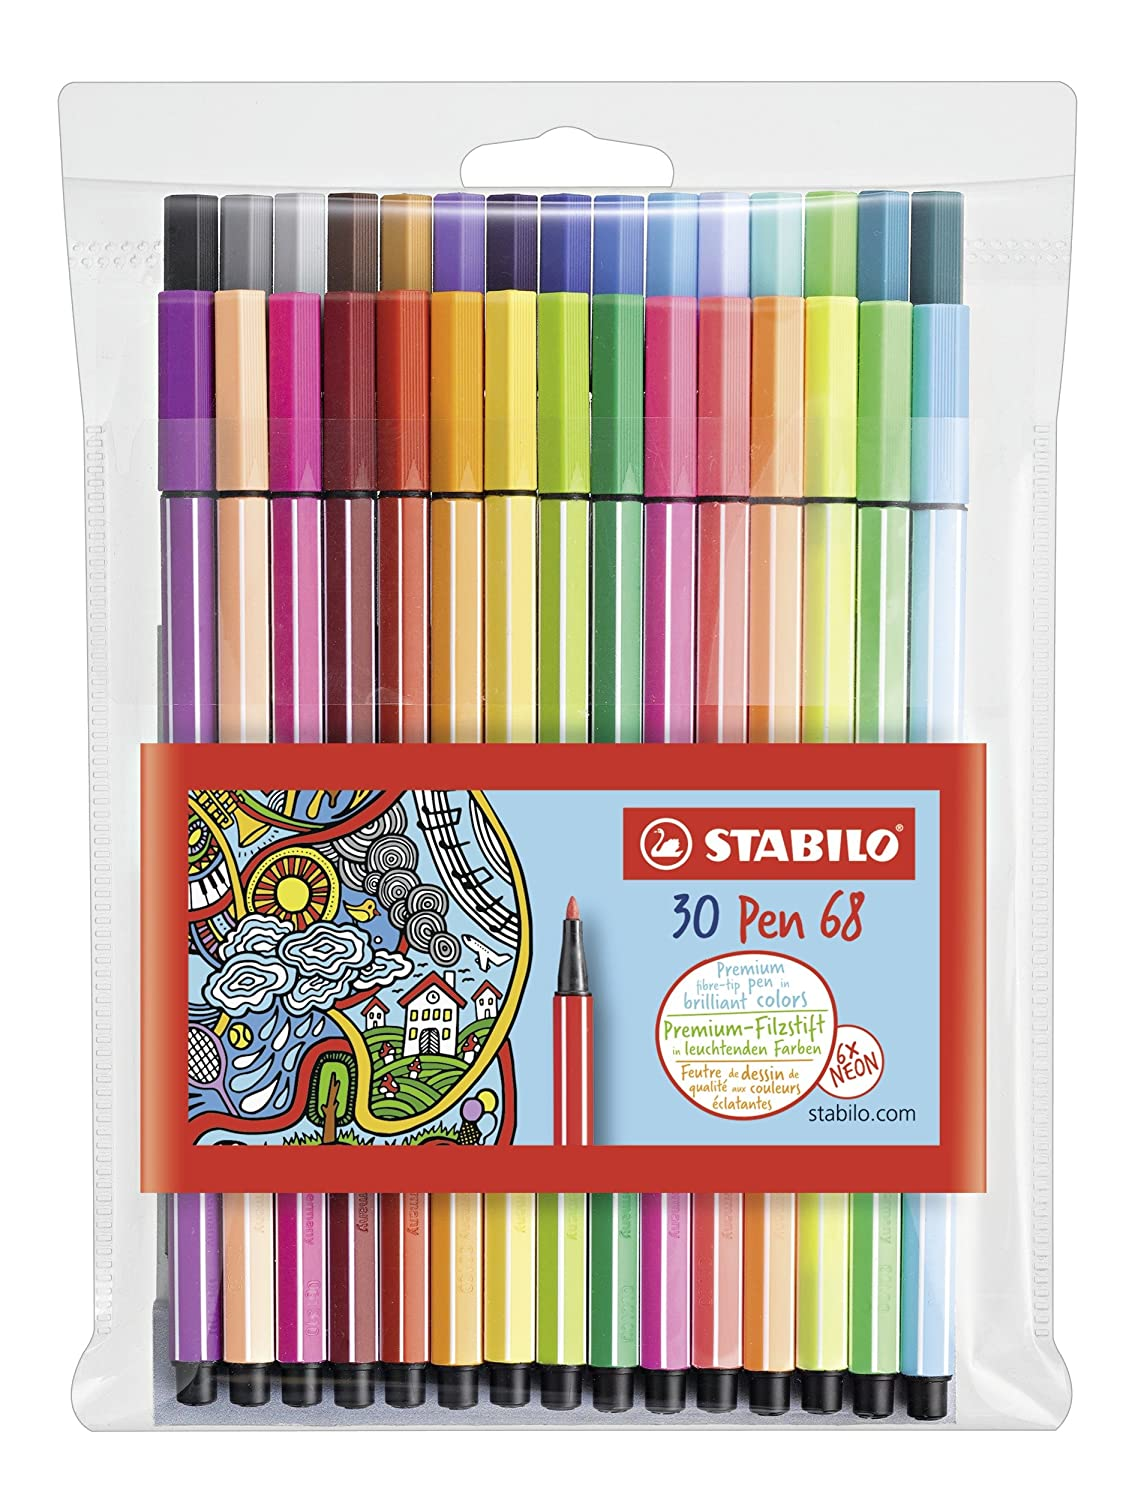 Stabilo Pen 68 Coloring Felt-tip Marker Pen, 1 mm - 30-Color Wallet Set MacPherson's SW6830-1